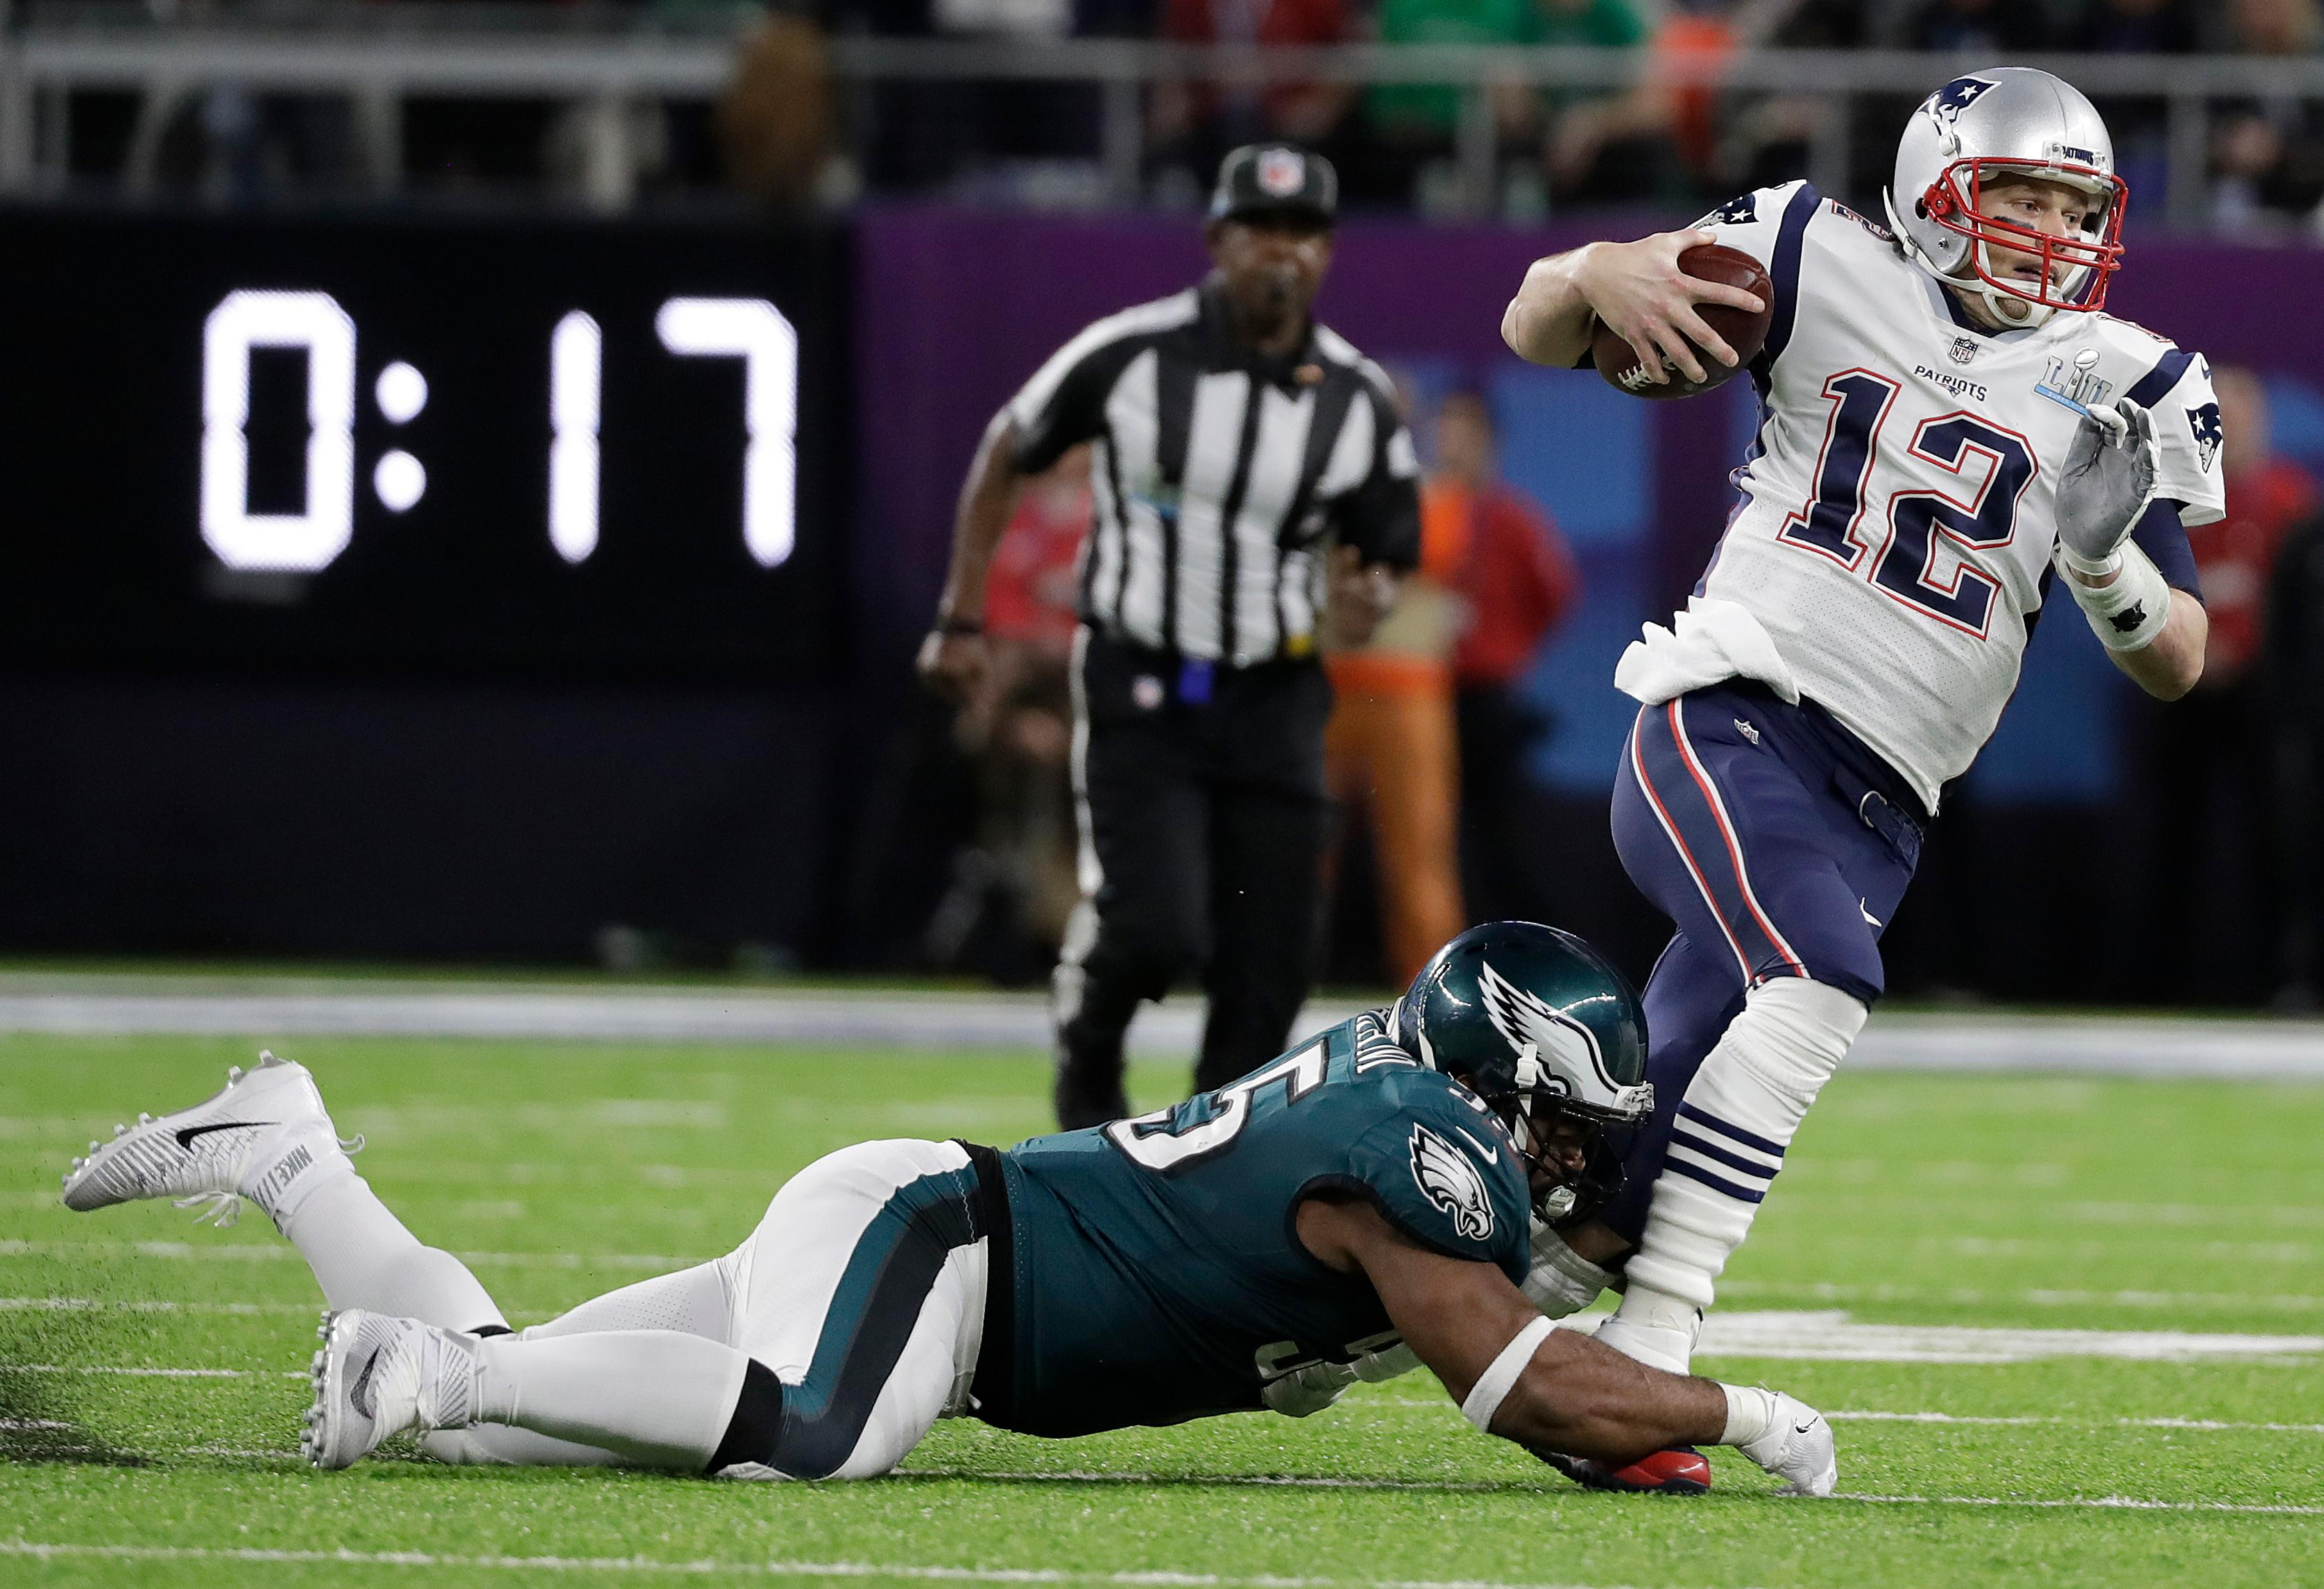 New England Patriots' Tom Brady (12) runs from Philadelphia Eagles' Brandon Graham during the first half of the NFL Super Bowl 52 football game Sunday, Feb. 4, 2018, in Minneapolis. (AP Photo/Mark Humphrey)